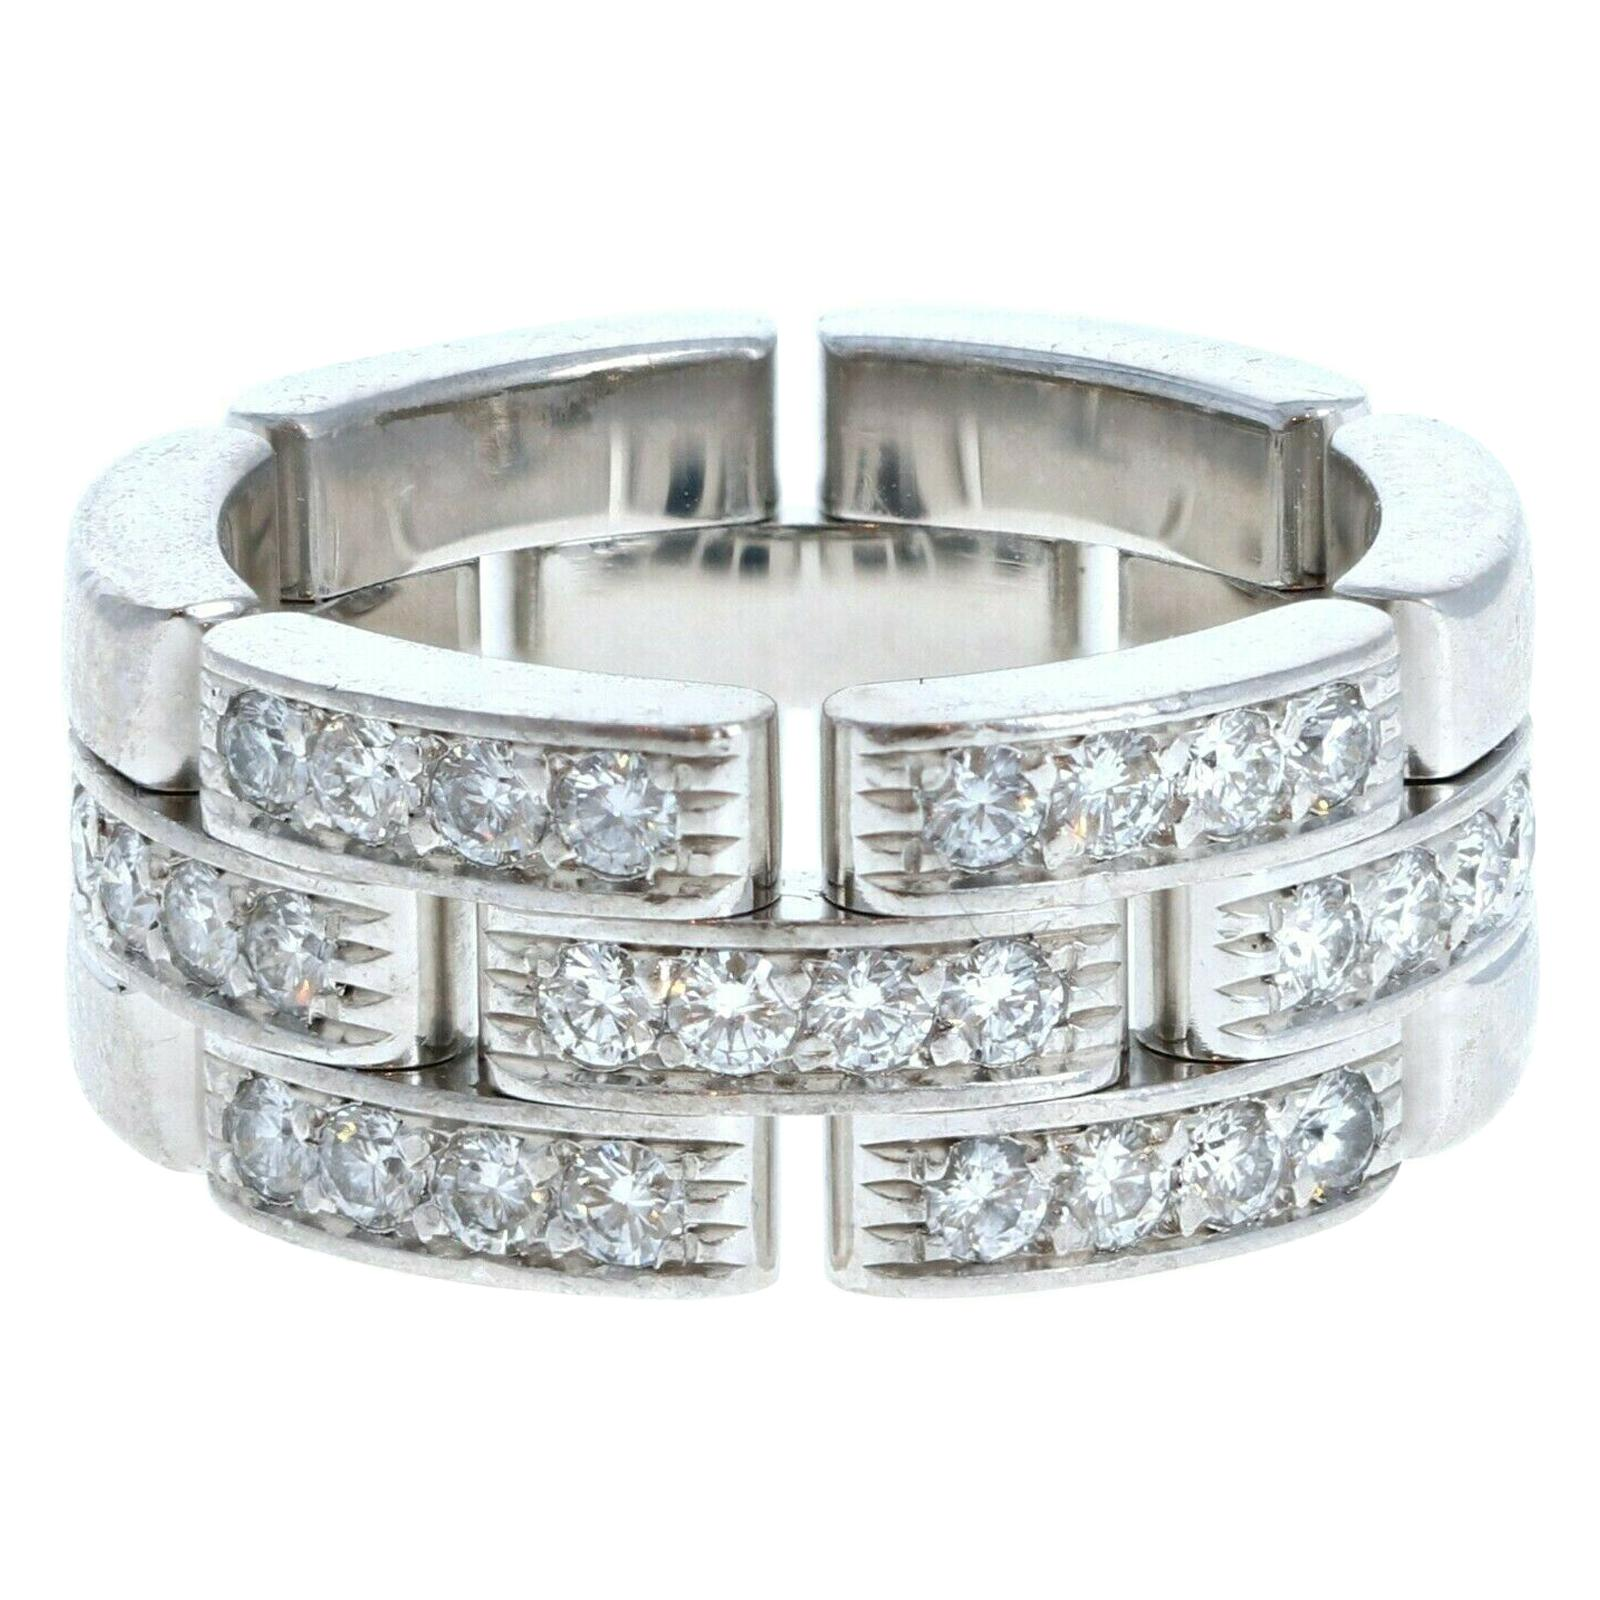 Cartier 18k White Gold Maillon Panthere Diamond Band Ring 11.6g